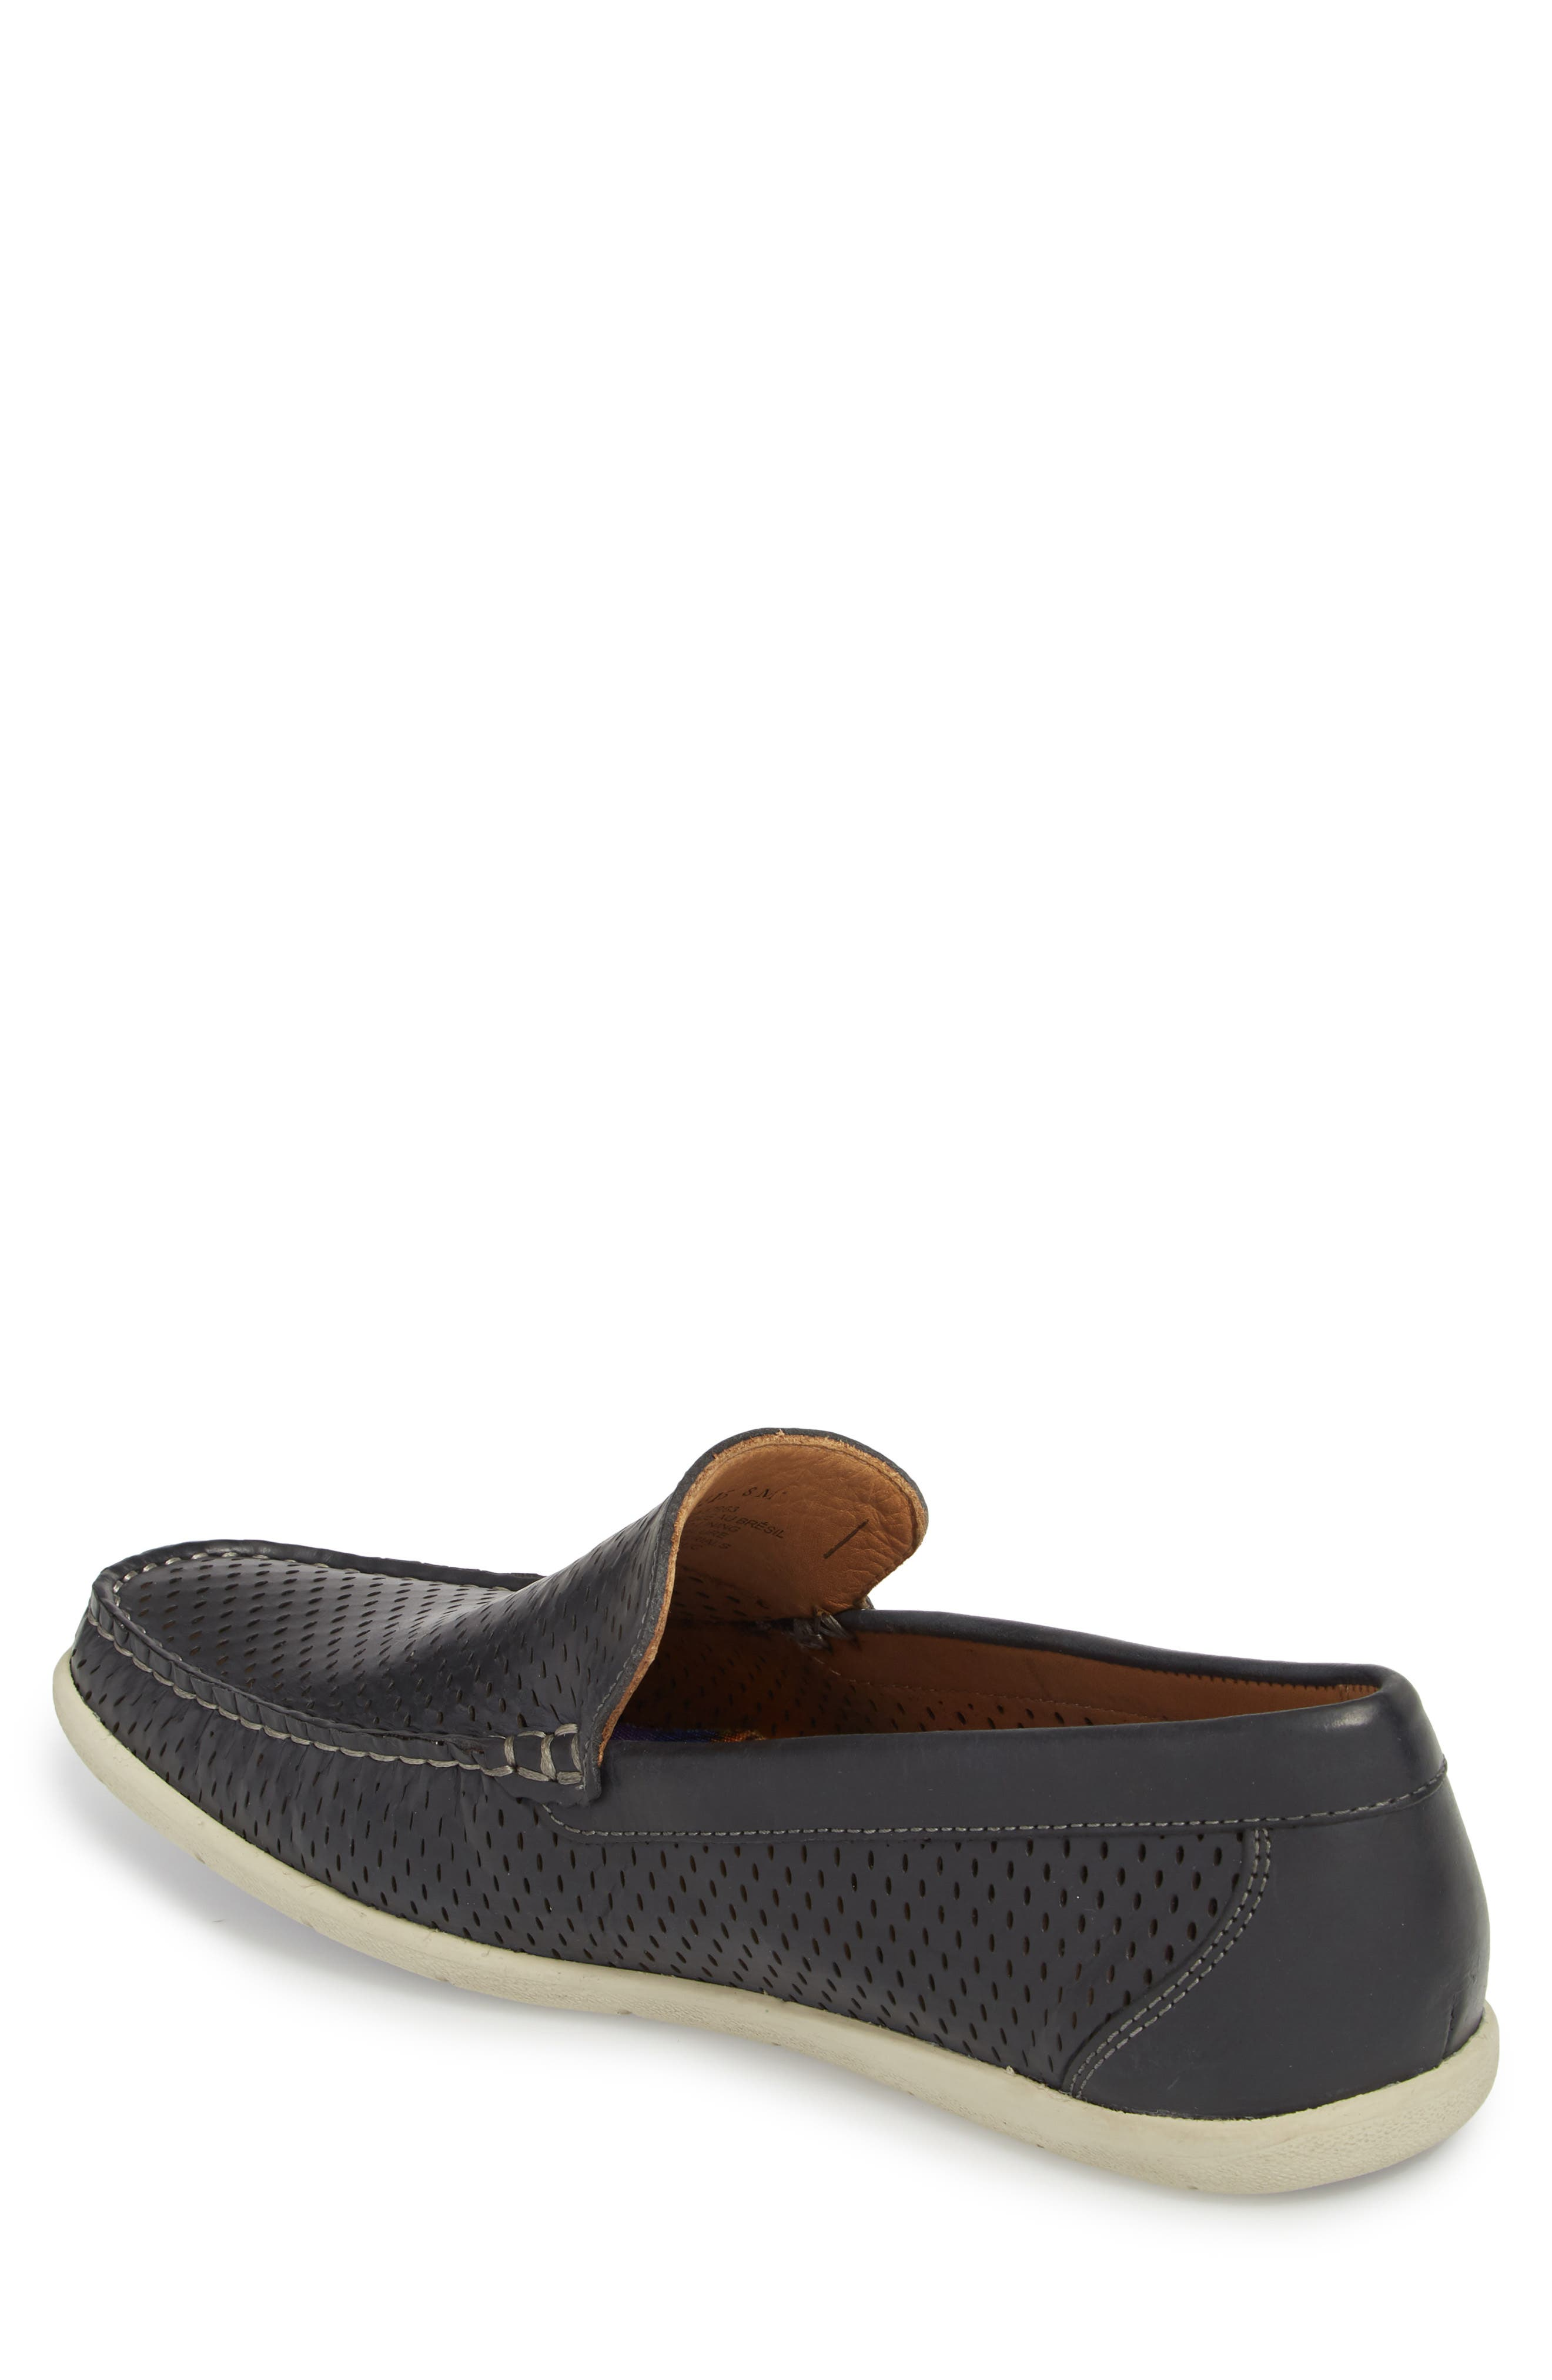 Manhattan Loafer,                             Alternate thumbnail 2, color,                             NAVY LEATHER